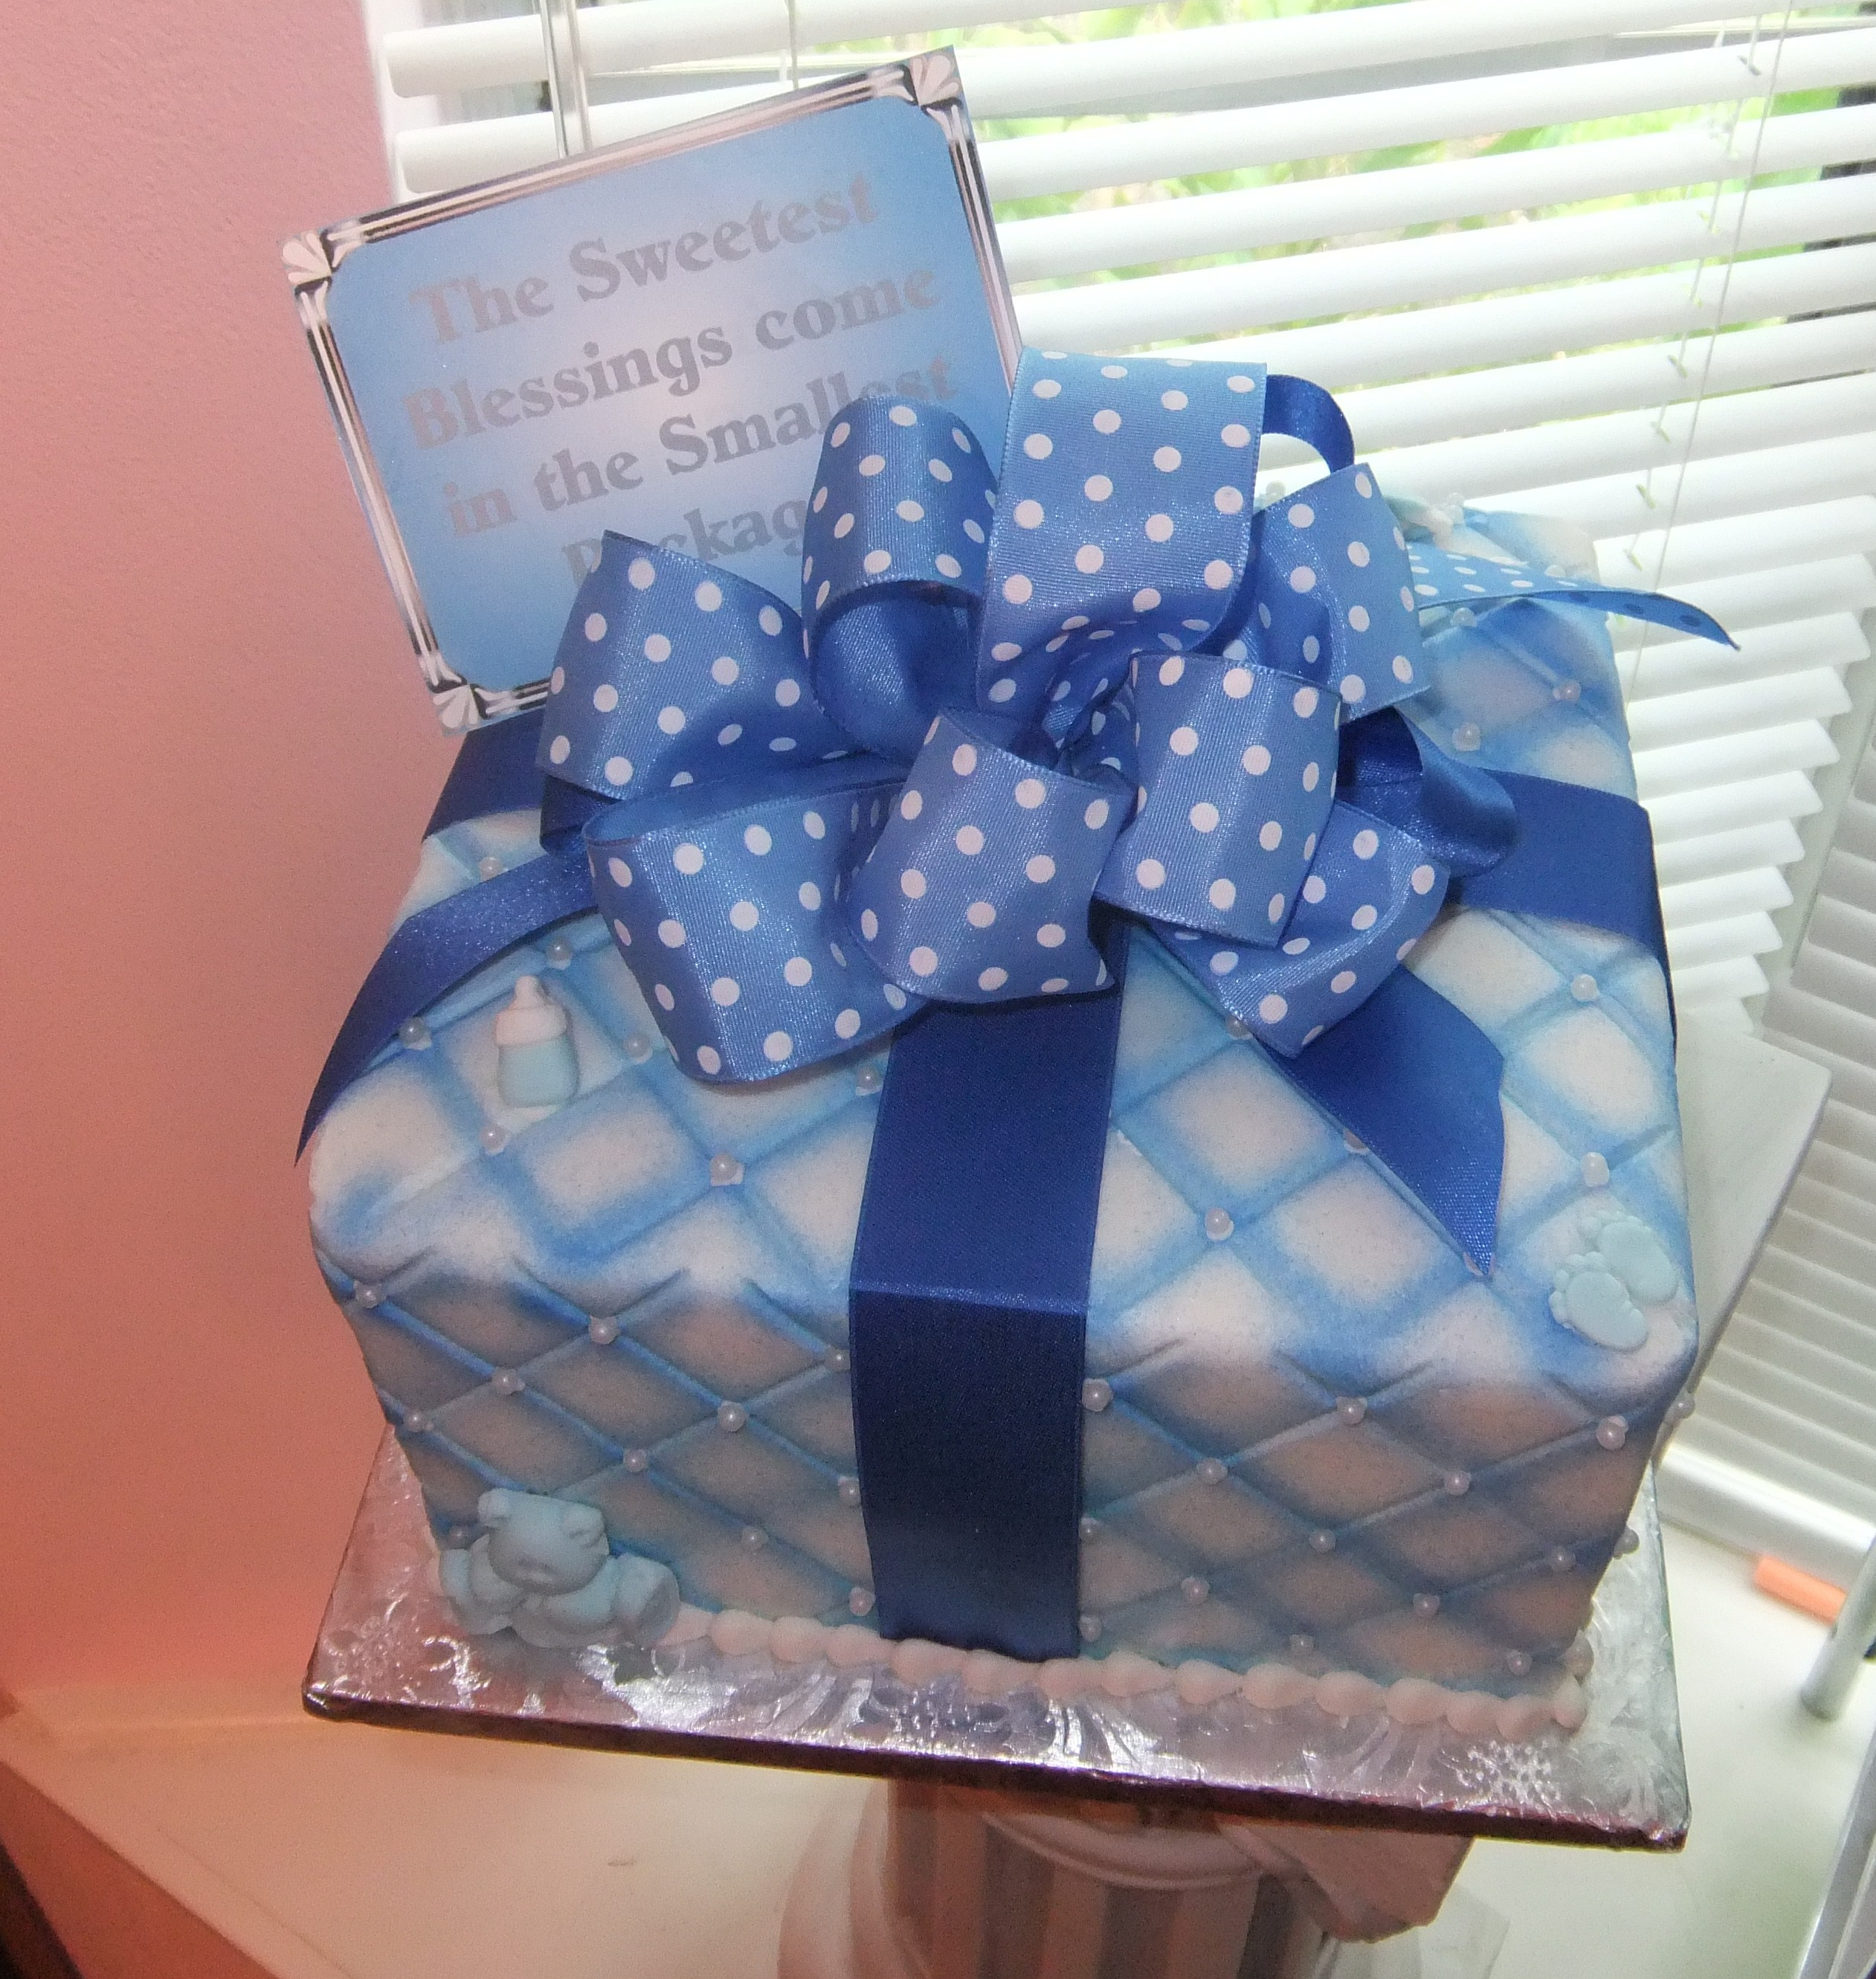 Baby blue gift cake